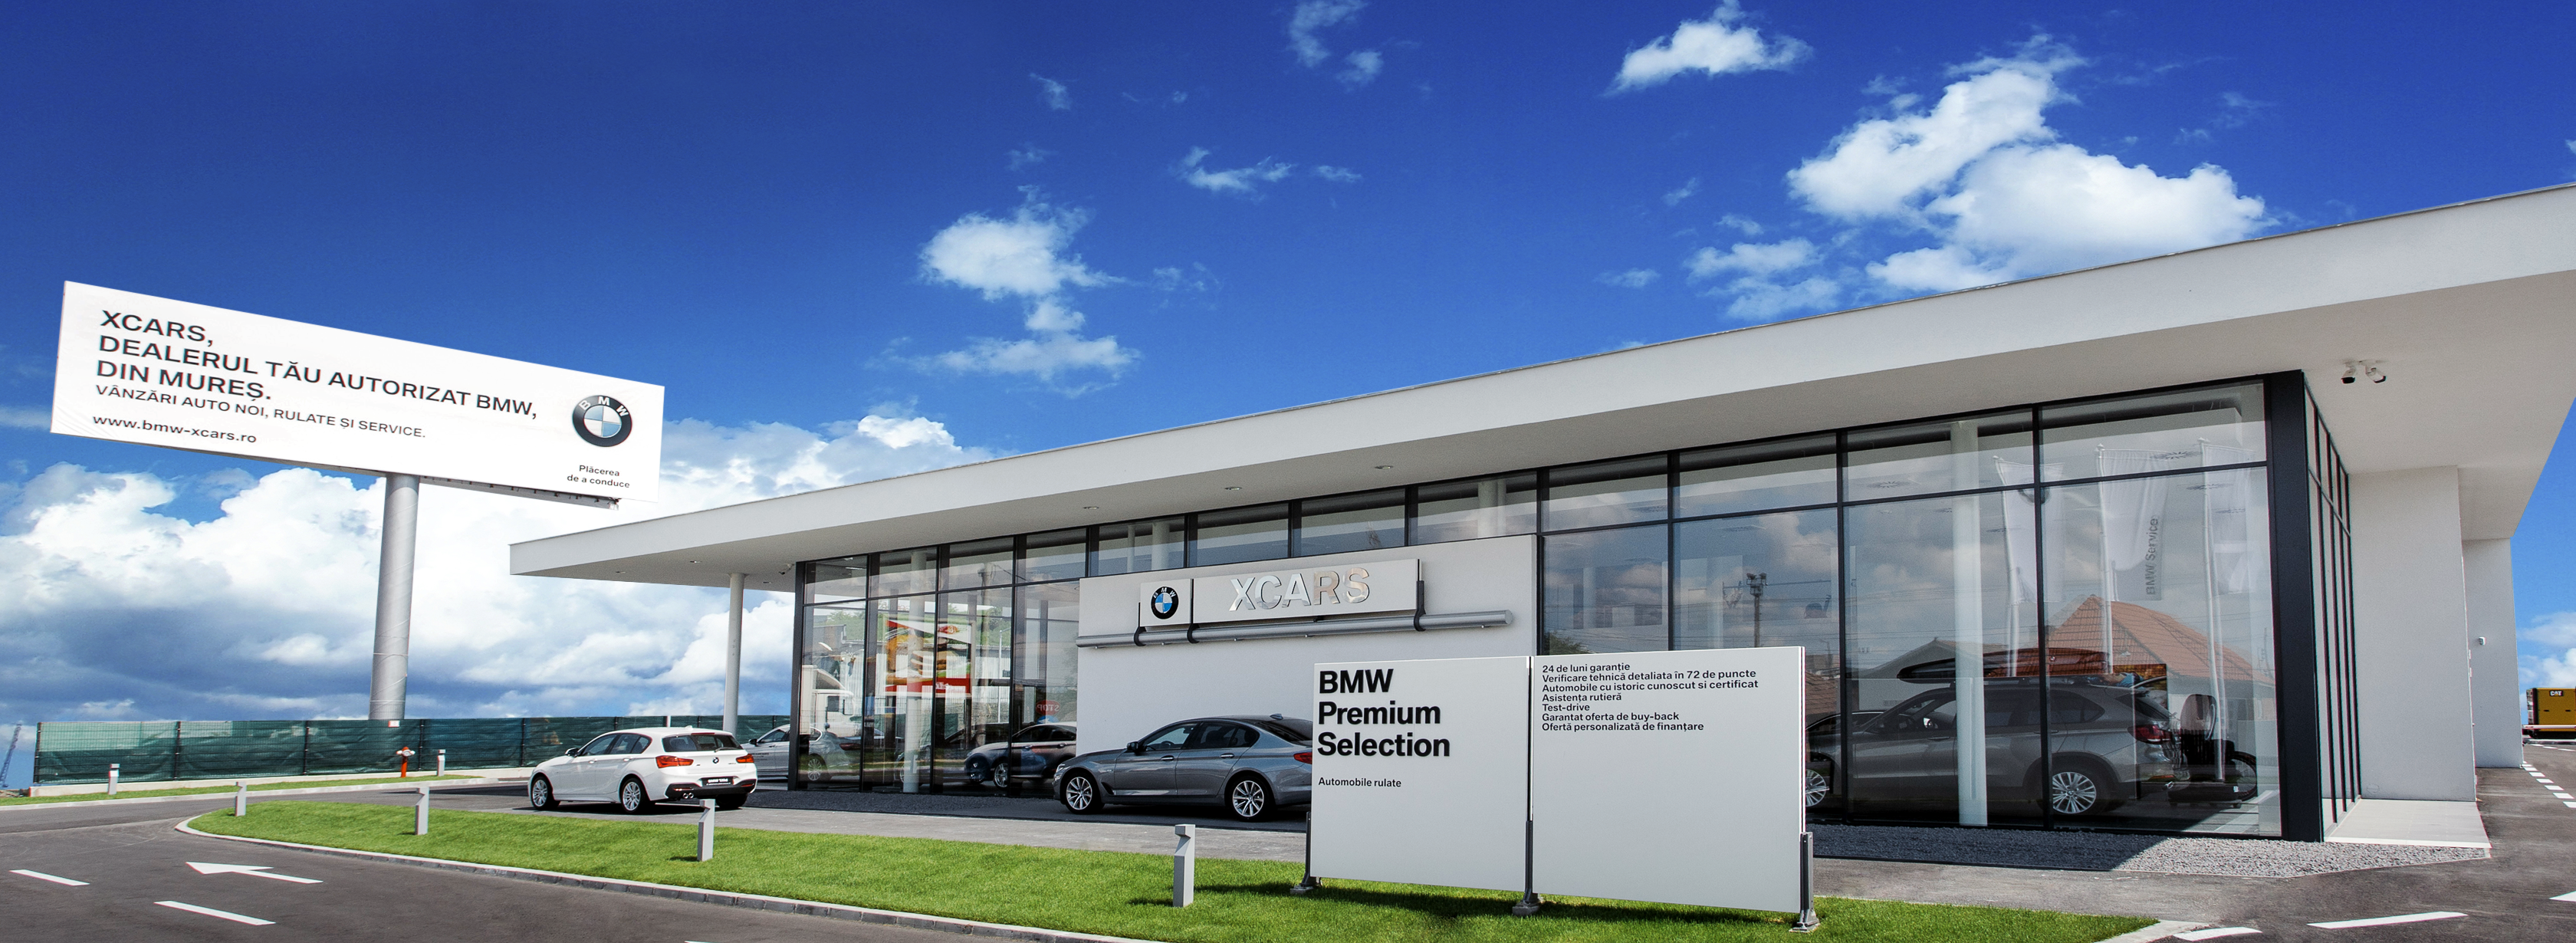 Showroom BMW XCARS